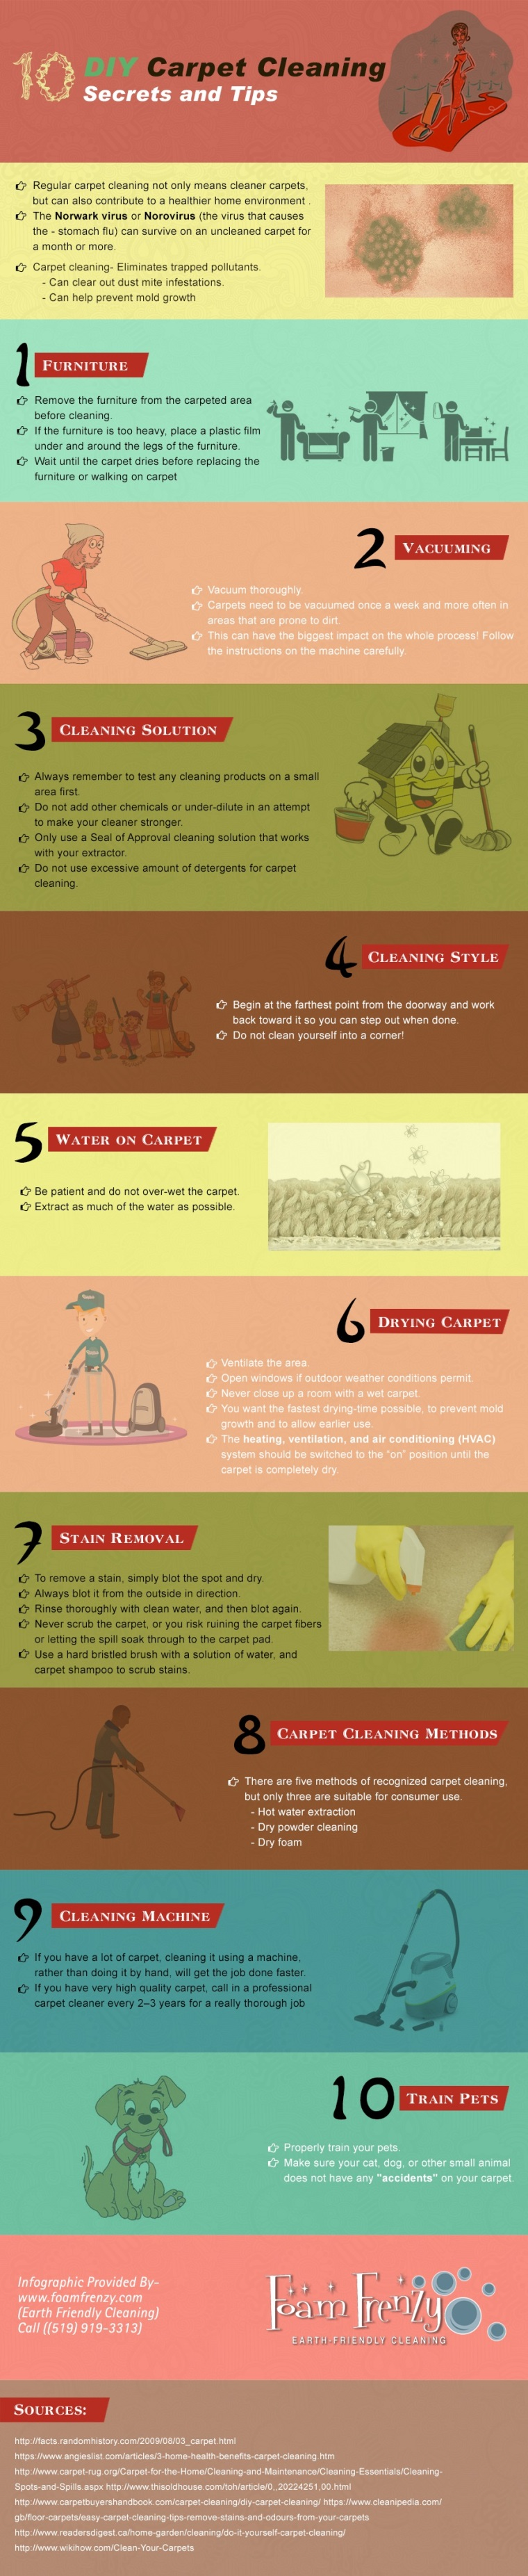 DIY Carpet Cleaning Secrets & Tips (Infographic) | ecogreenlove